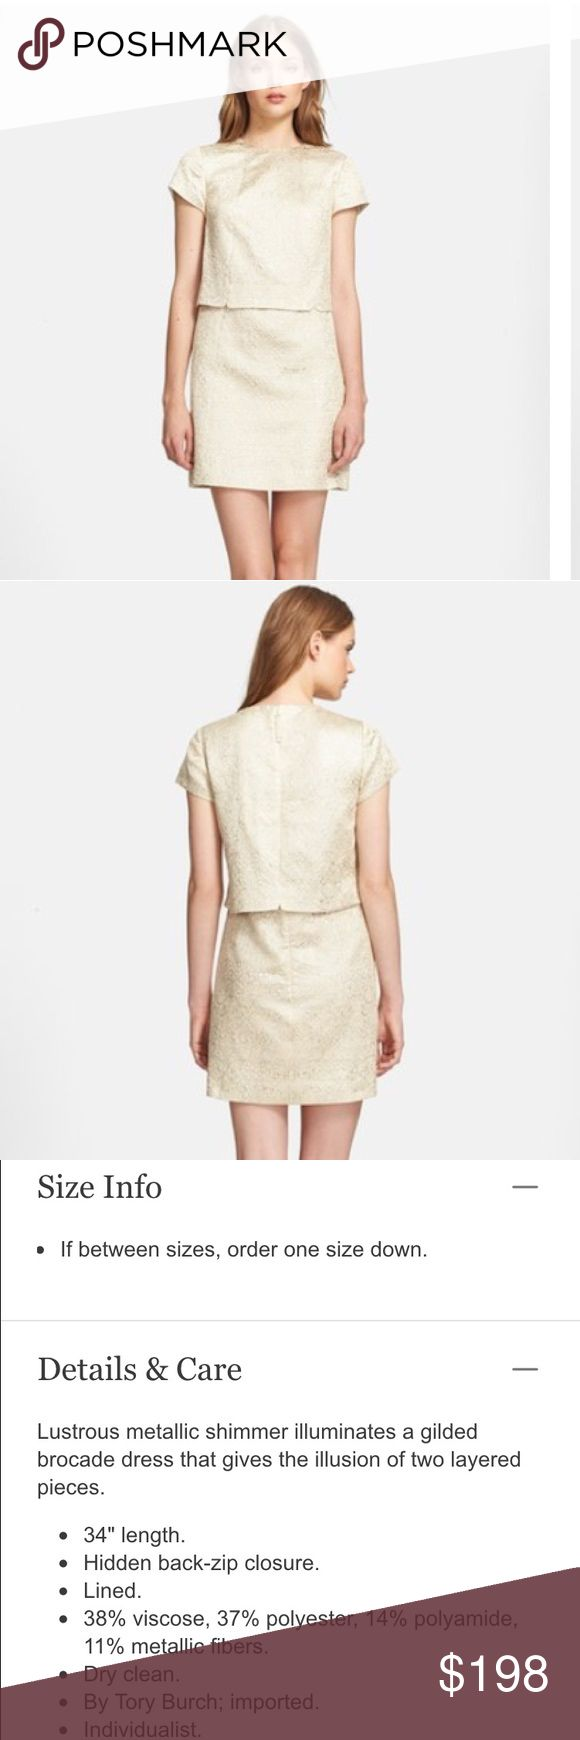 Tory Burch Brielle Metallic-Brocade Dress Tory Burch Brielle Metallic-Brocade Dress. Size 6. In excellent condition! Retails for $425.00 but is now sold out! Will upload pictures tomorrow. Tory Burch Dresses